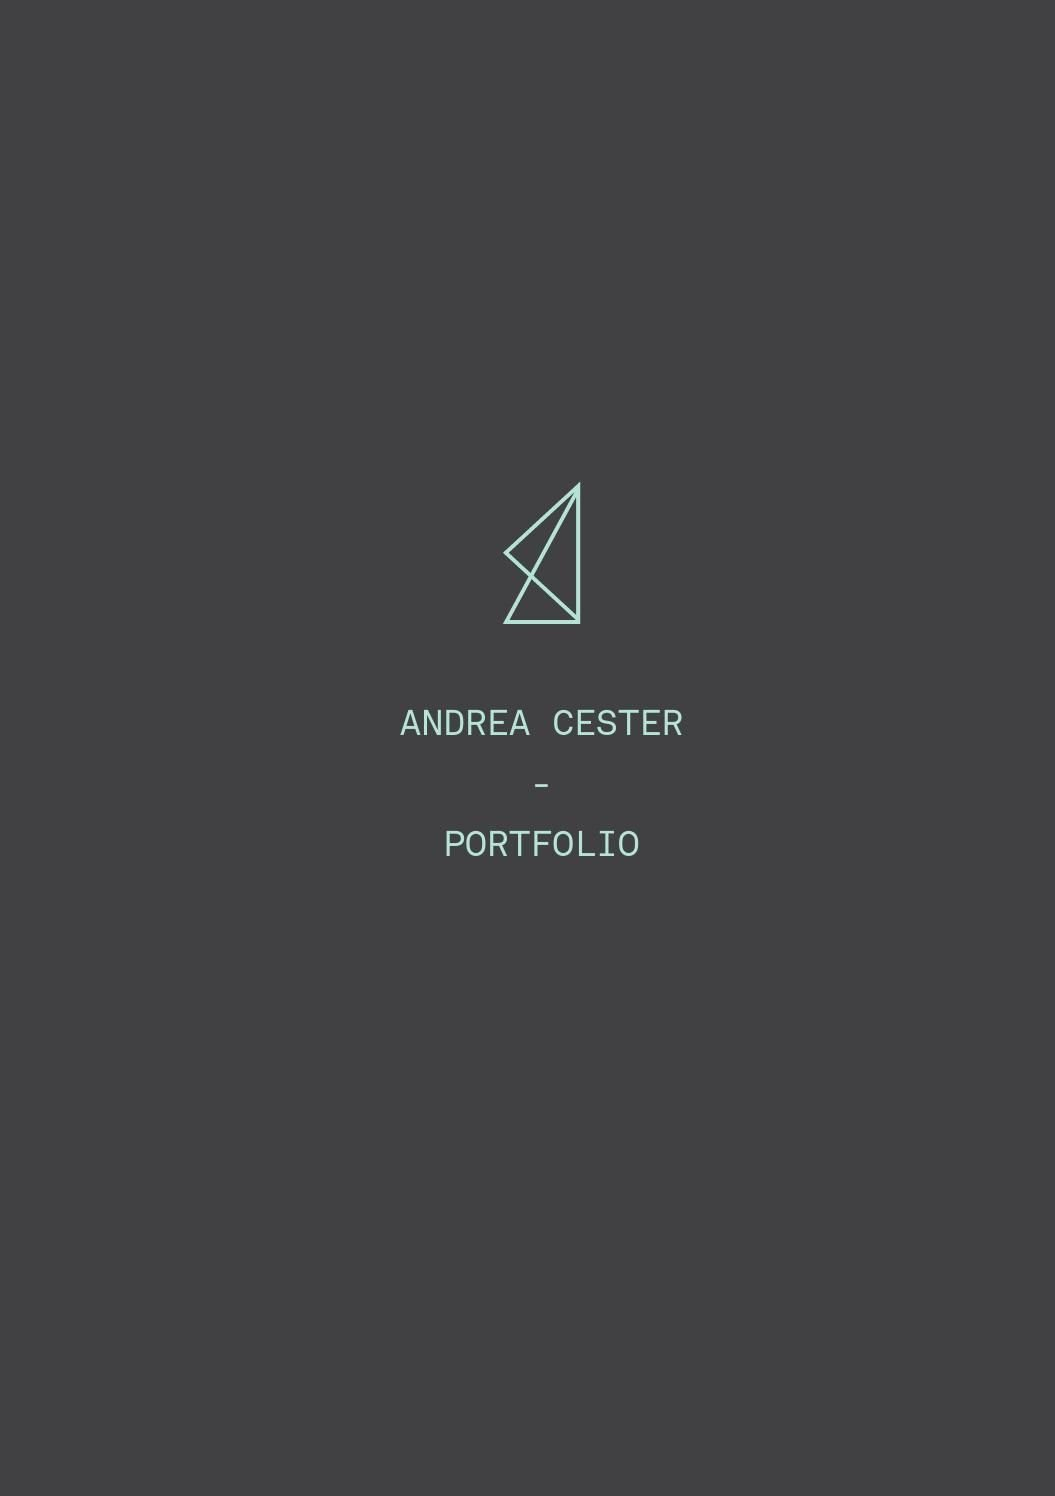 Portfolio Cover Page Template Awesome andrea Cester Portfolio Graphic